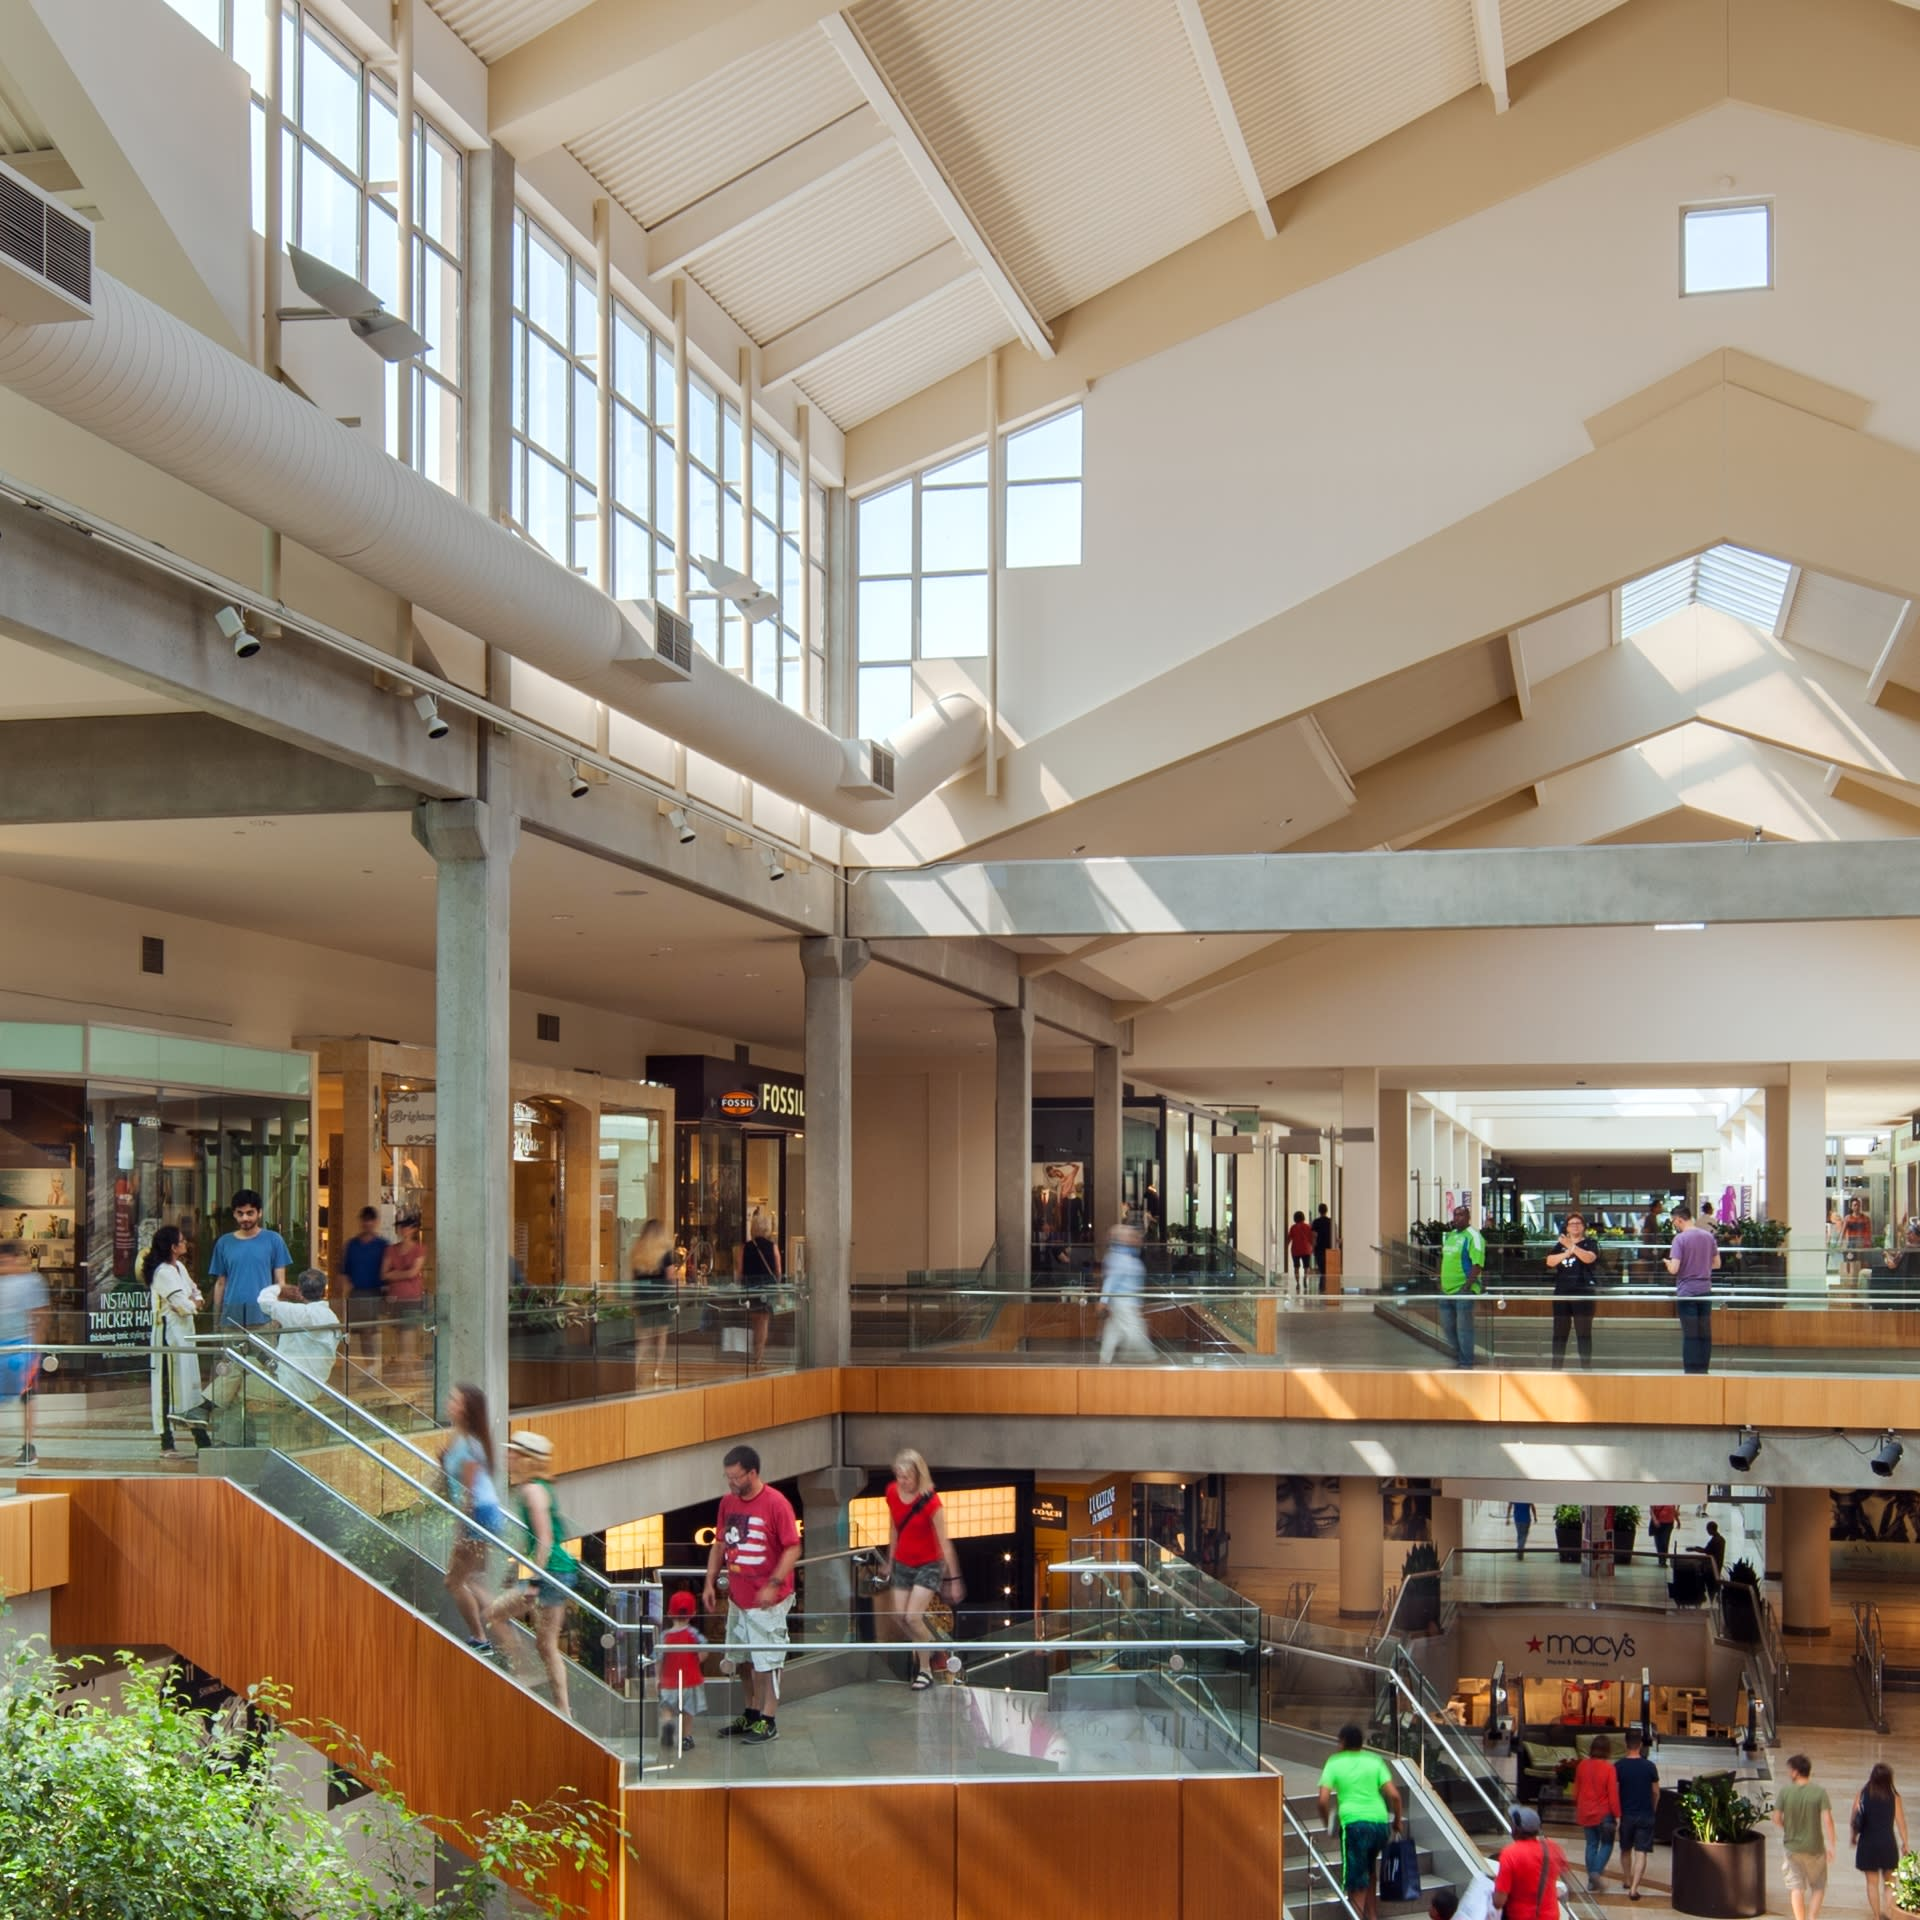 Community and Neighborhood- Shopping Center at Two Lincoln Tower, Washington